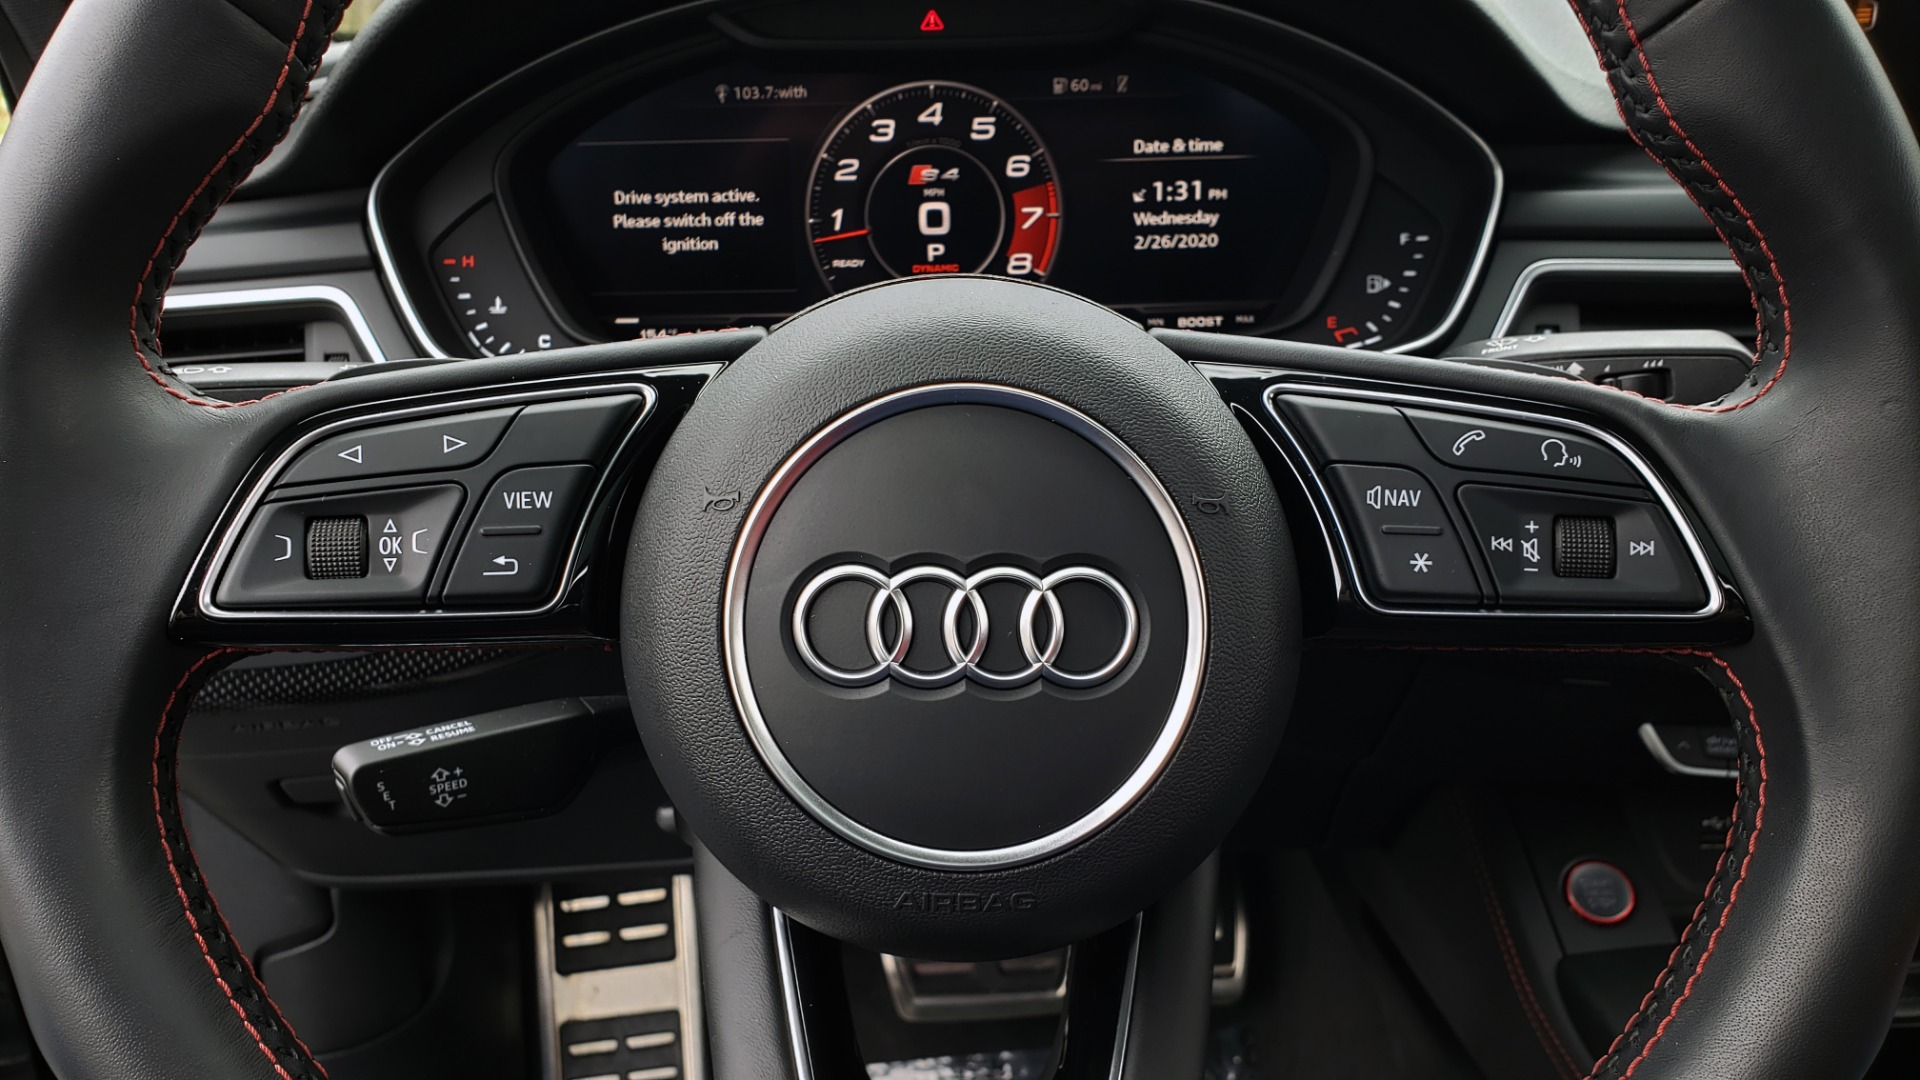 Used 2019 Audi S4 PREMIUM PLUS / AWD / NAV / SUNROOF / B&O SOUND / REARVIEW for sale Sold at Formula Imports in Charlotte NC 28227 43